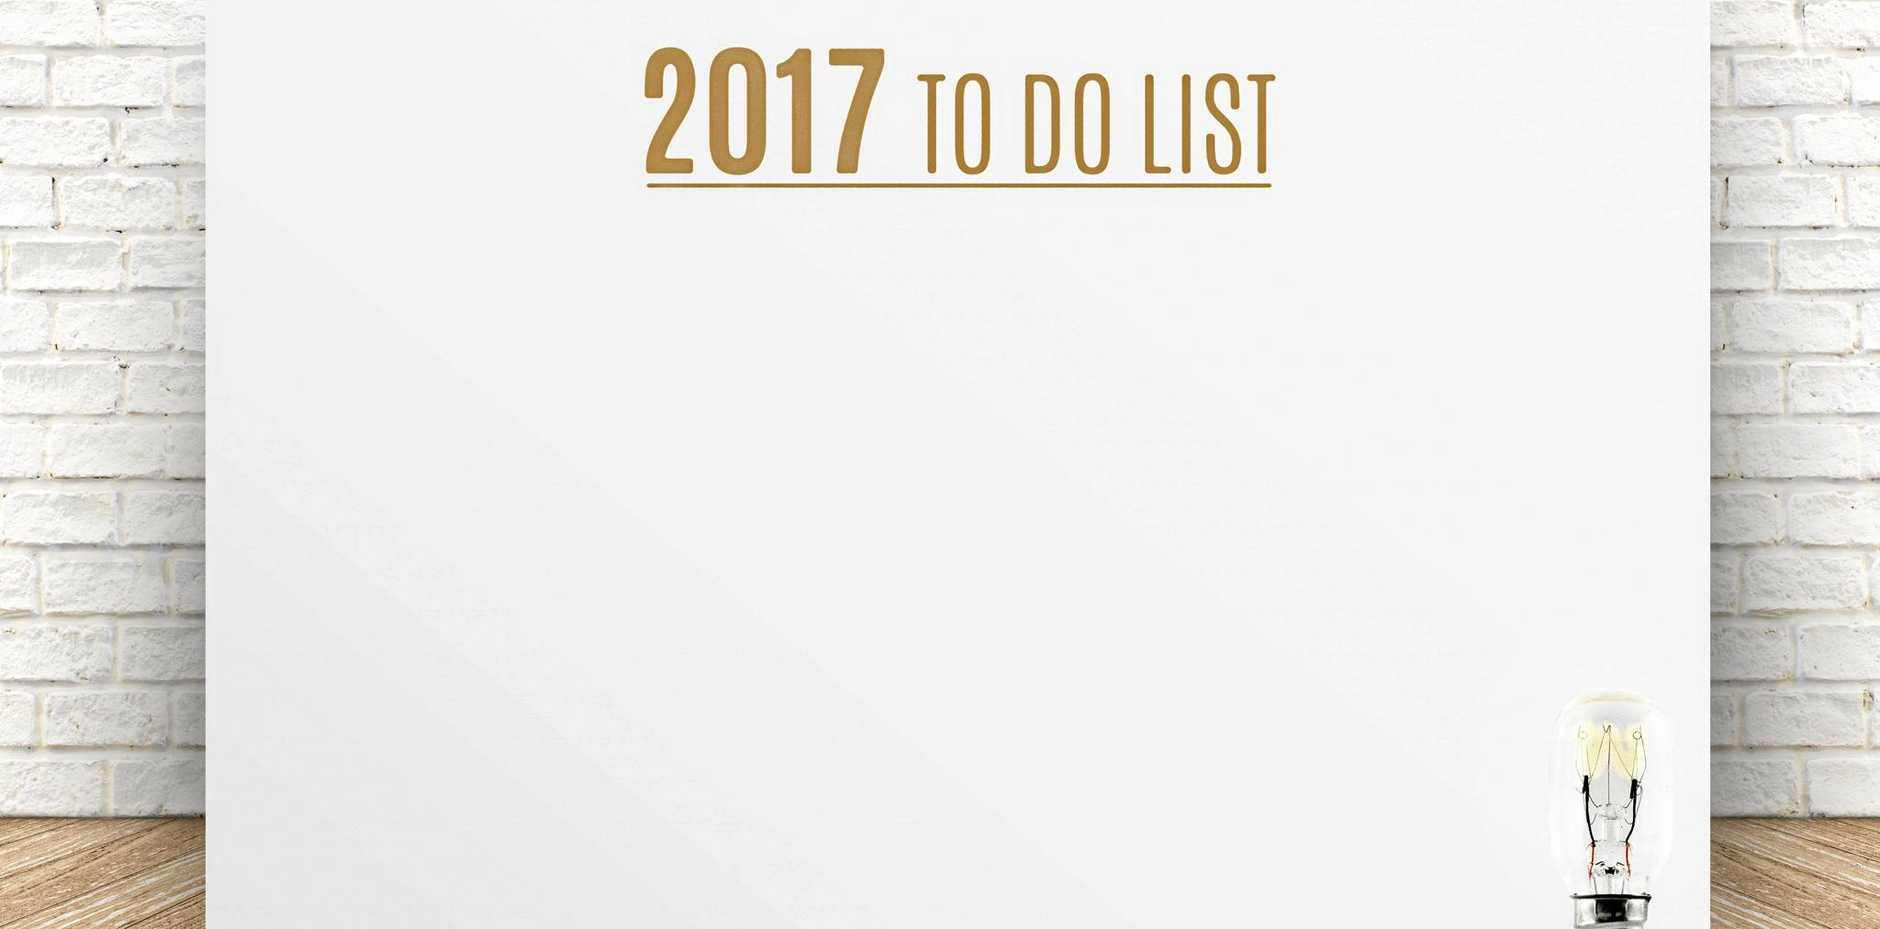 2017 To do list: Plan it, do it and you will feel better